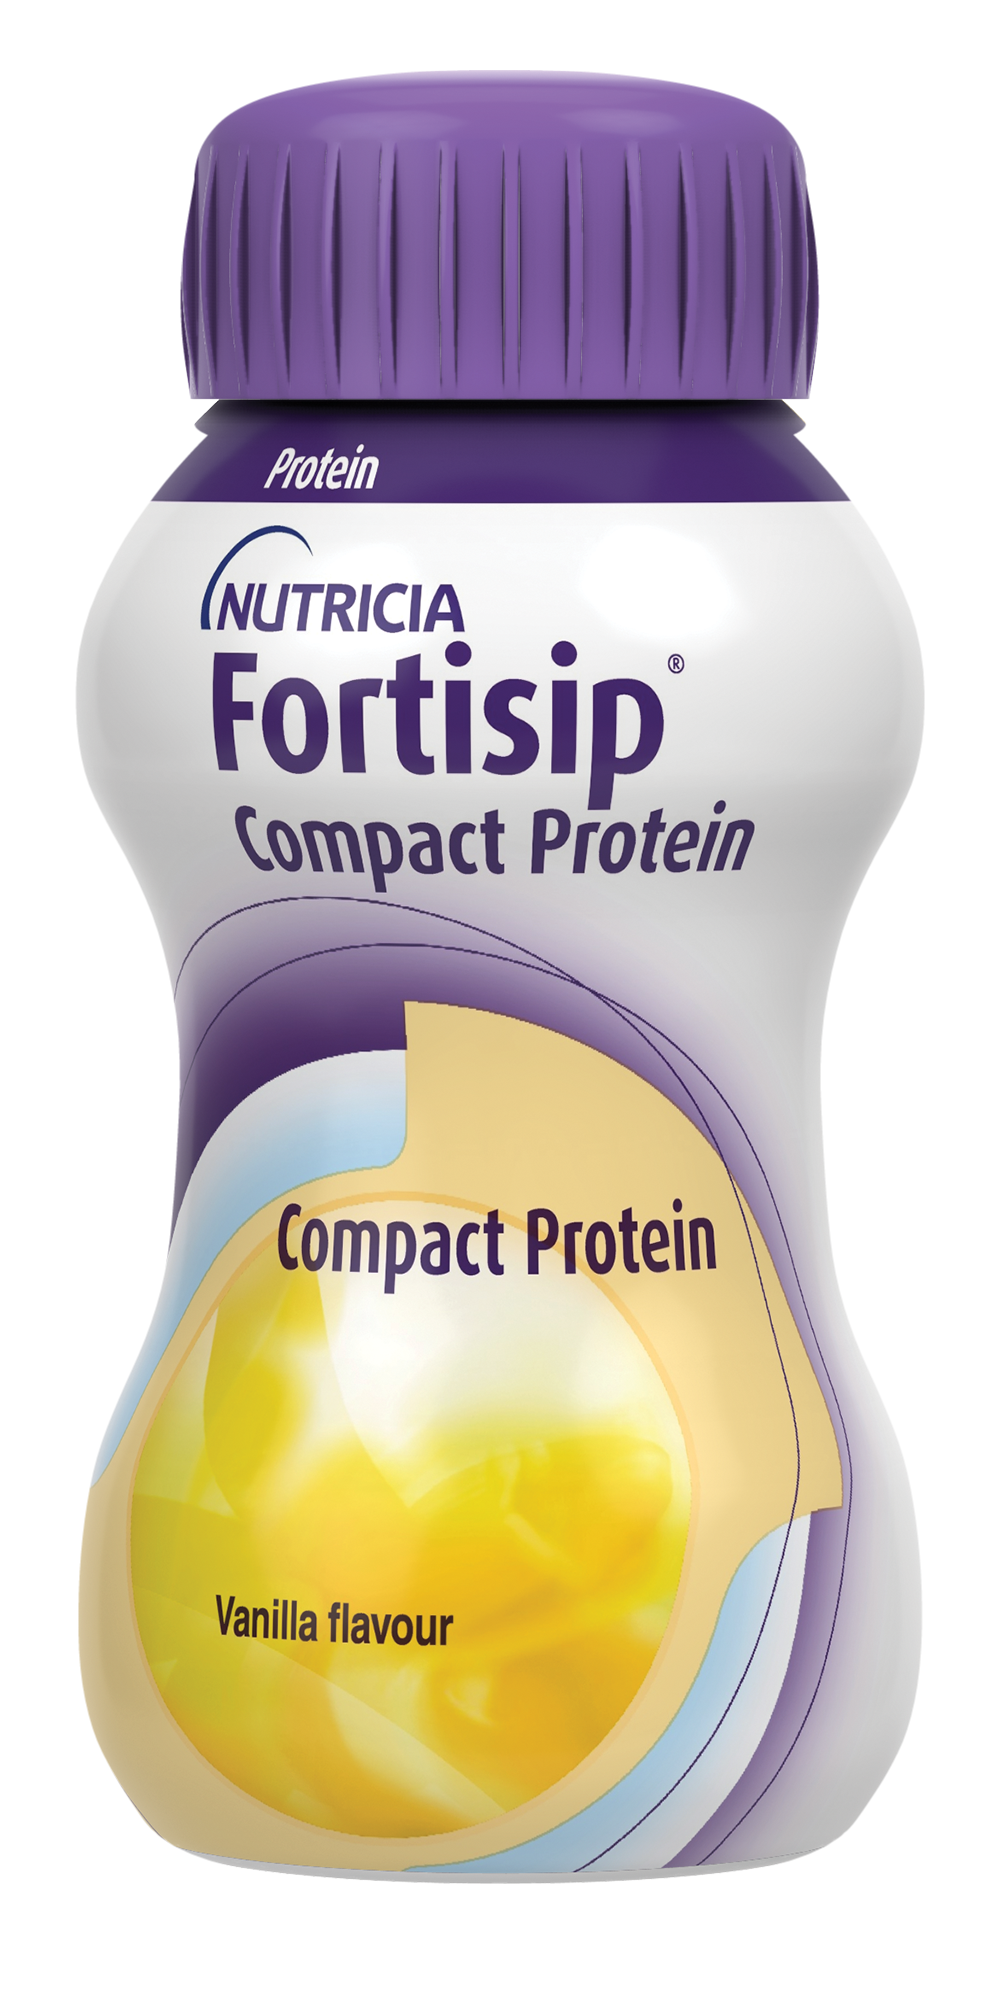 fortisip-compact-protein-pim-image-2021.png